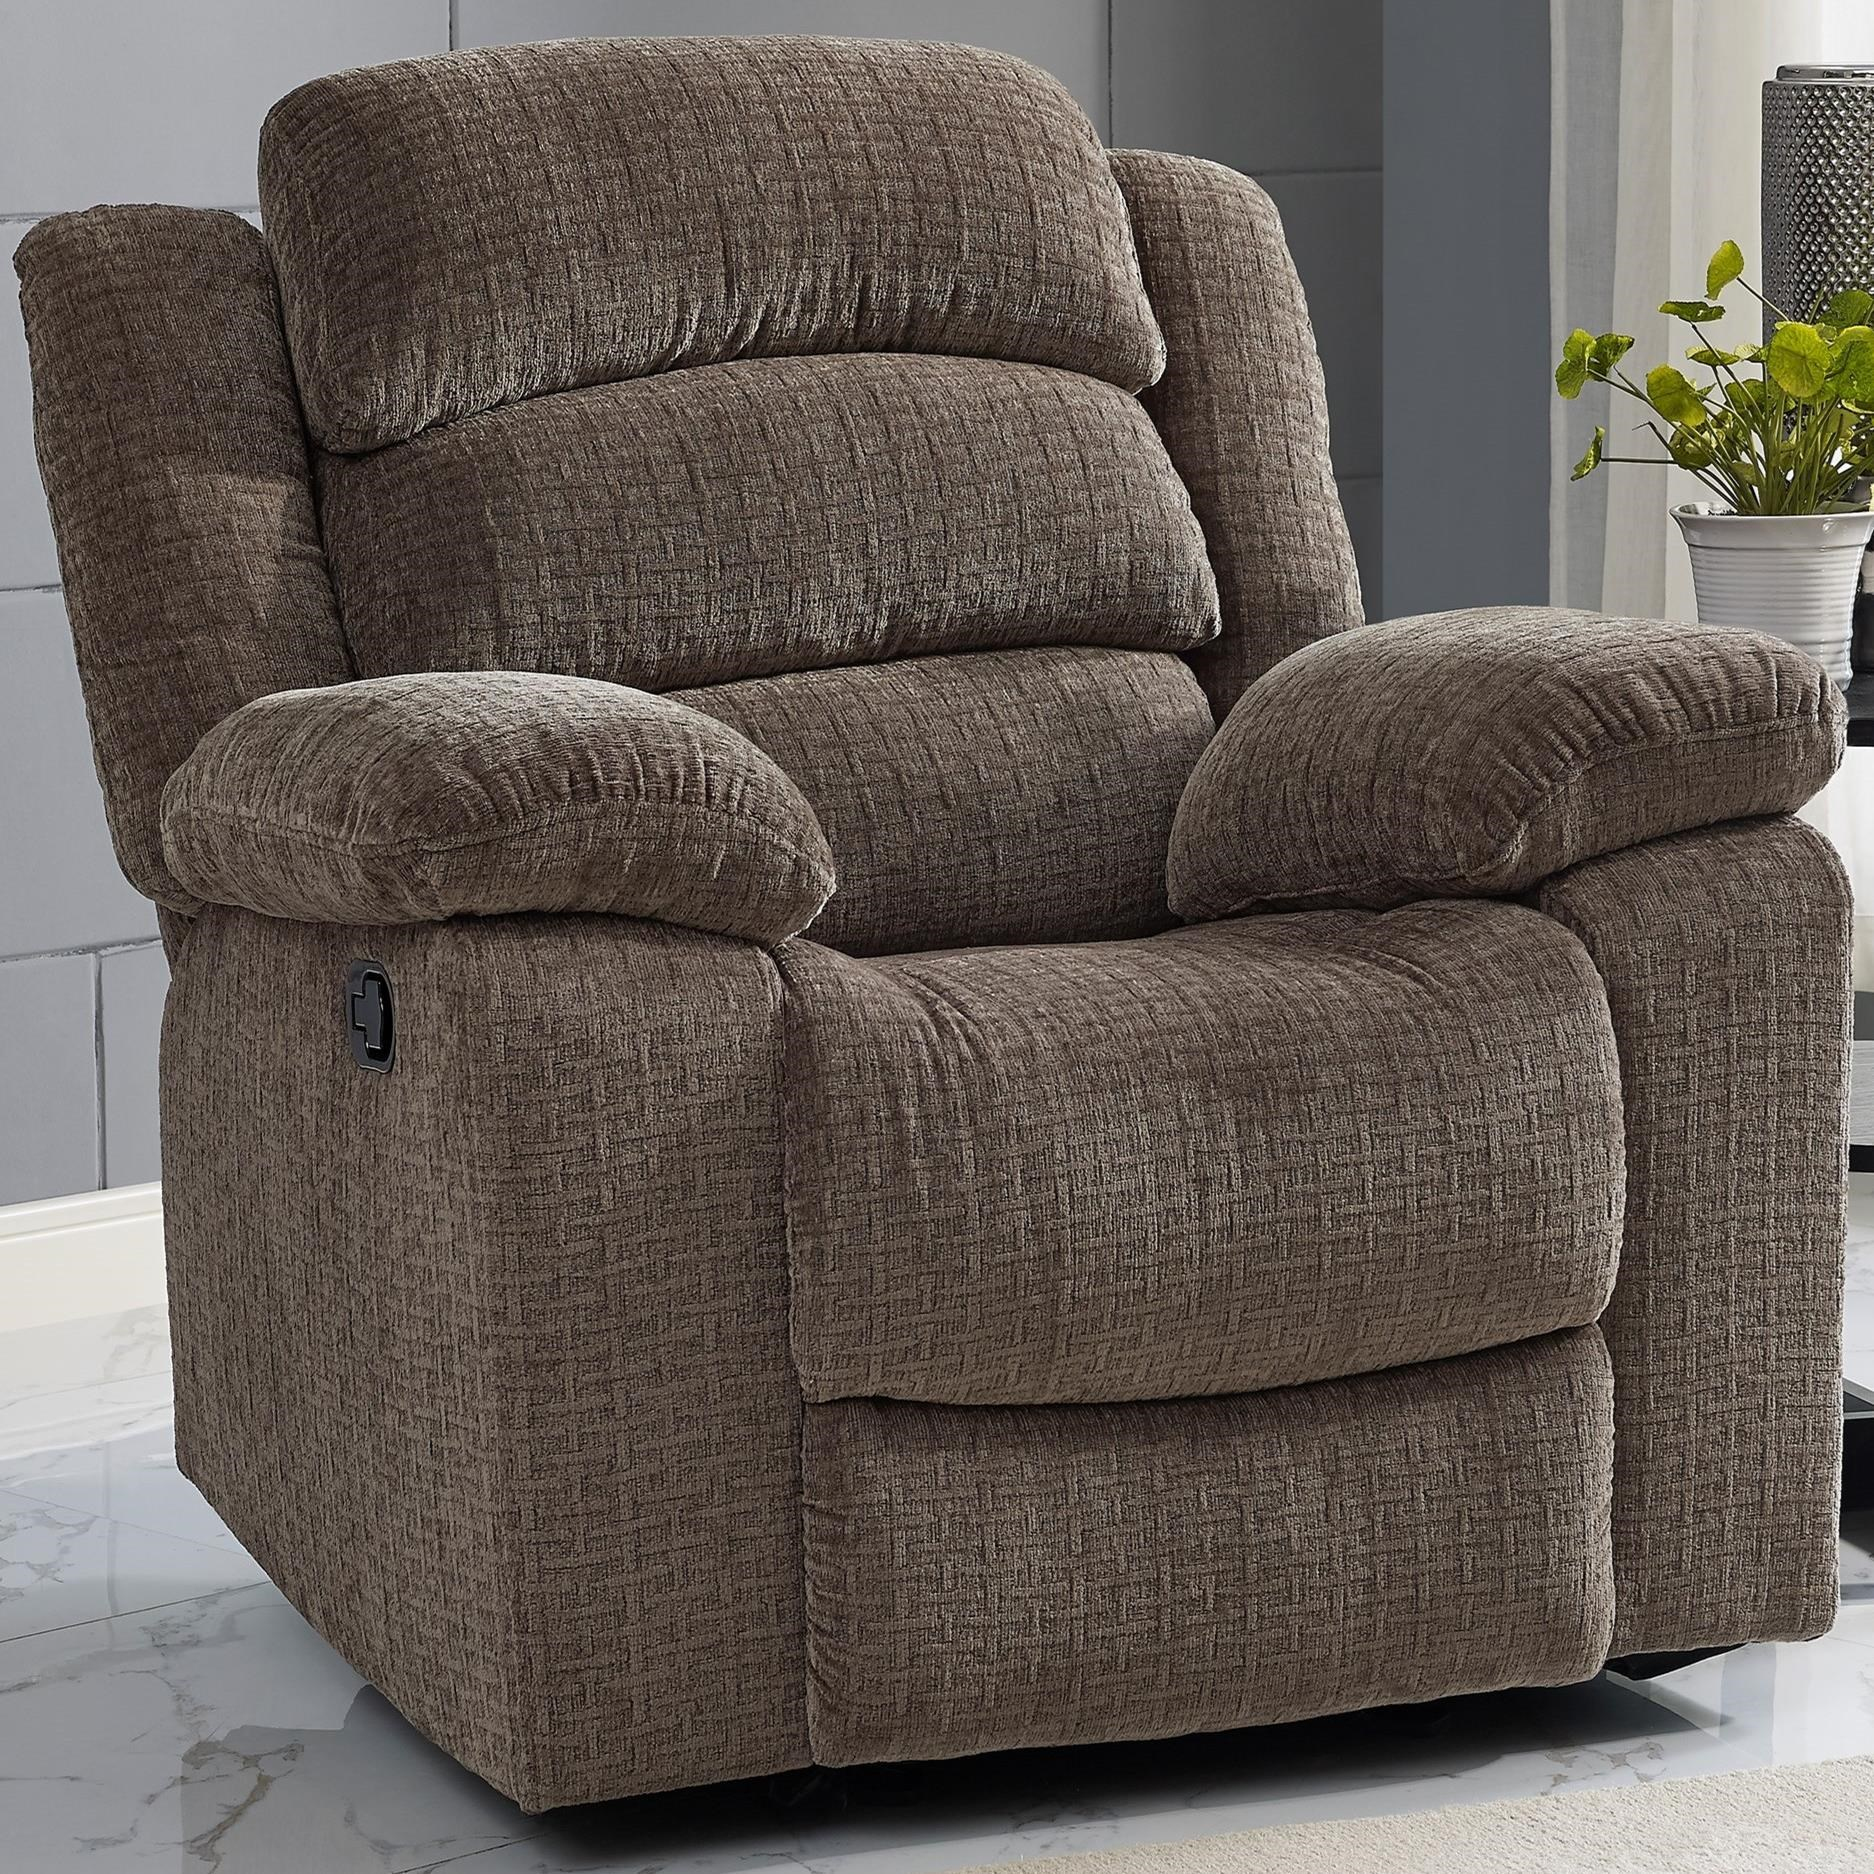 New Classic Austin Casual Glider Recliner with Bustle Back Old